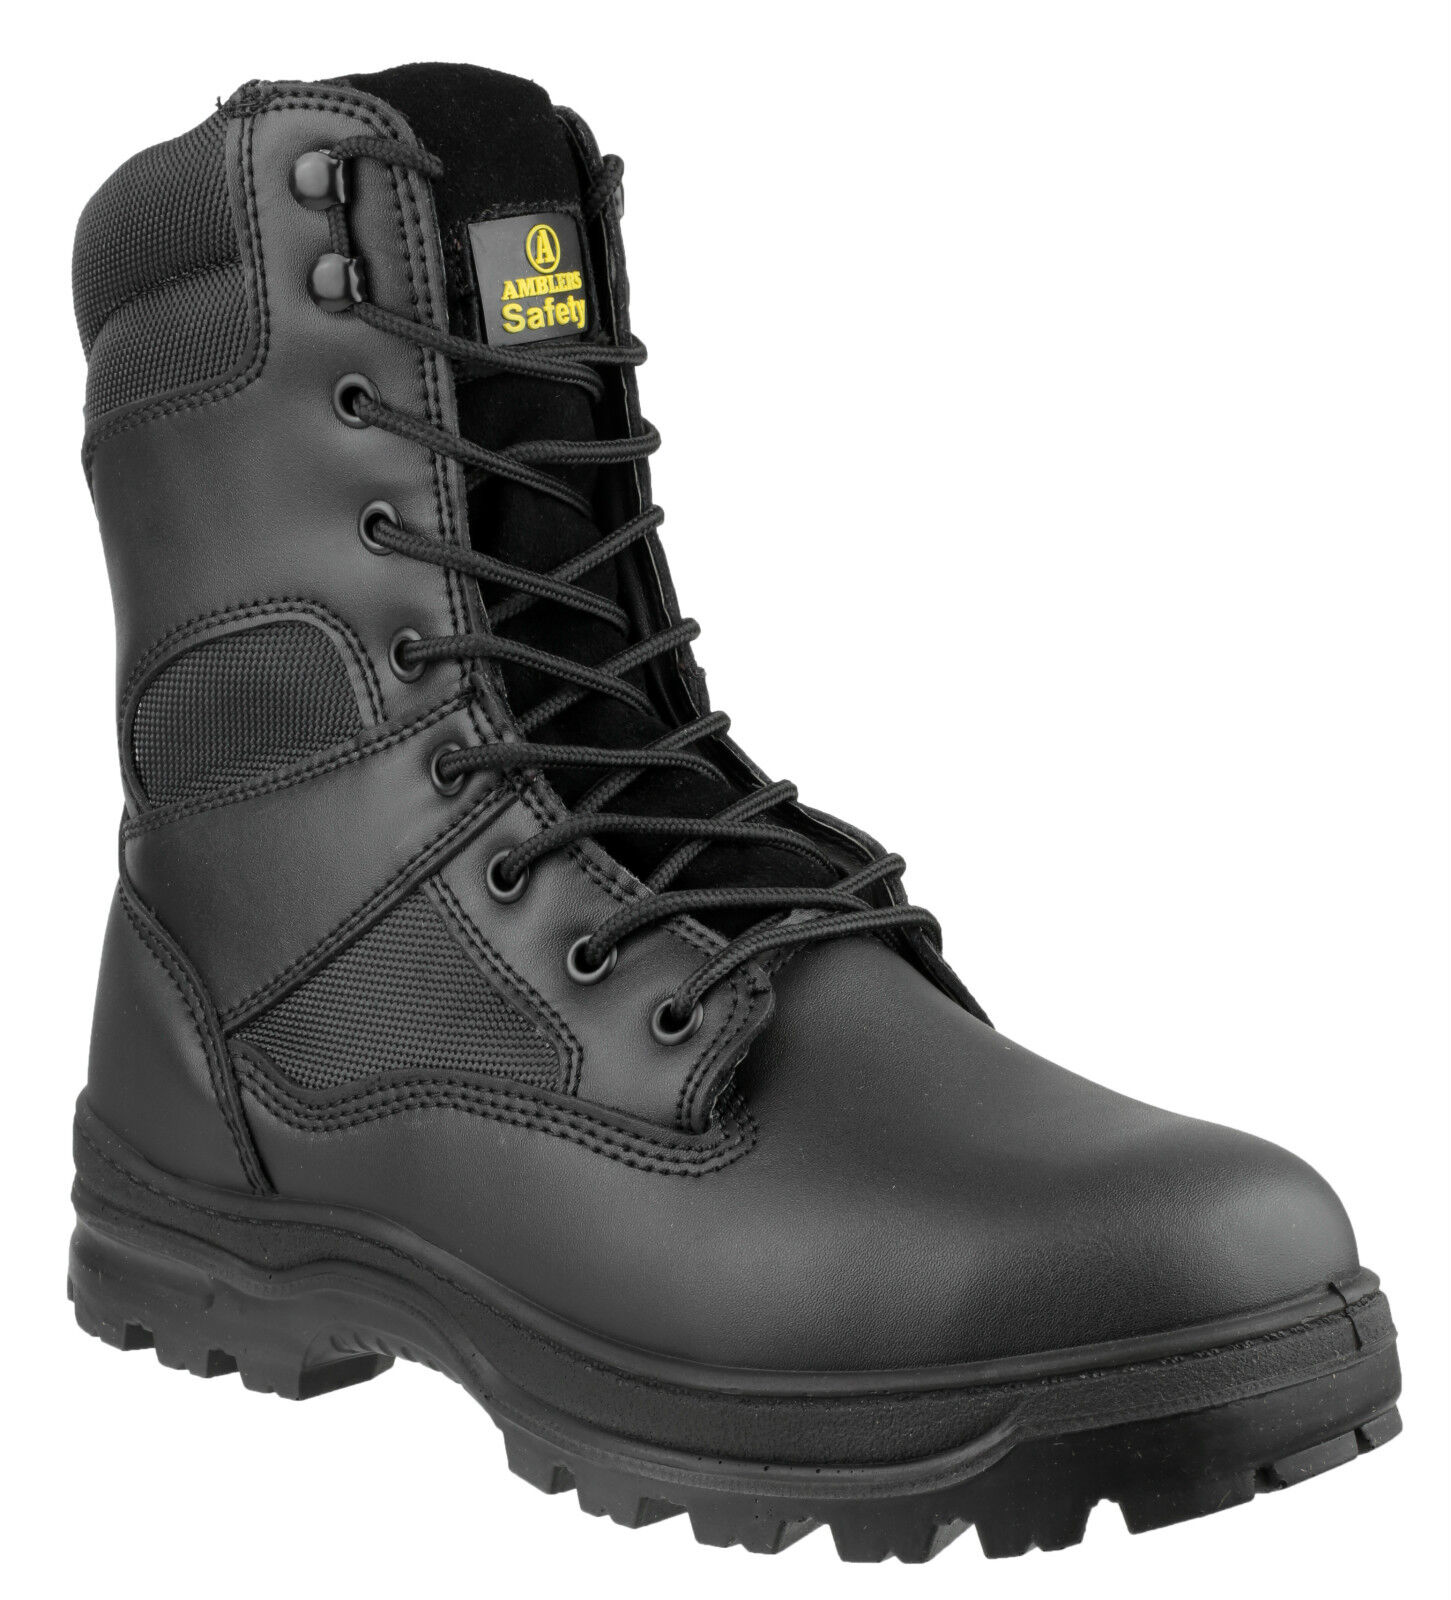 Amblers FS008 Mens Safety Steel Toe Cap Industrial Boots Shoes